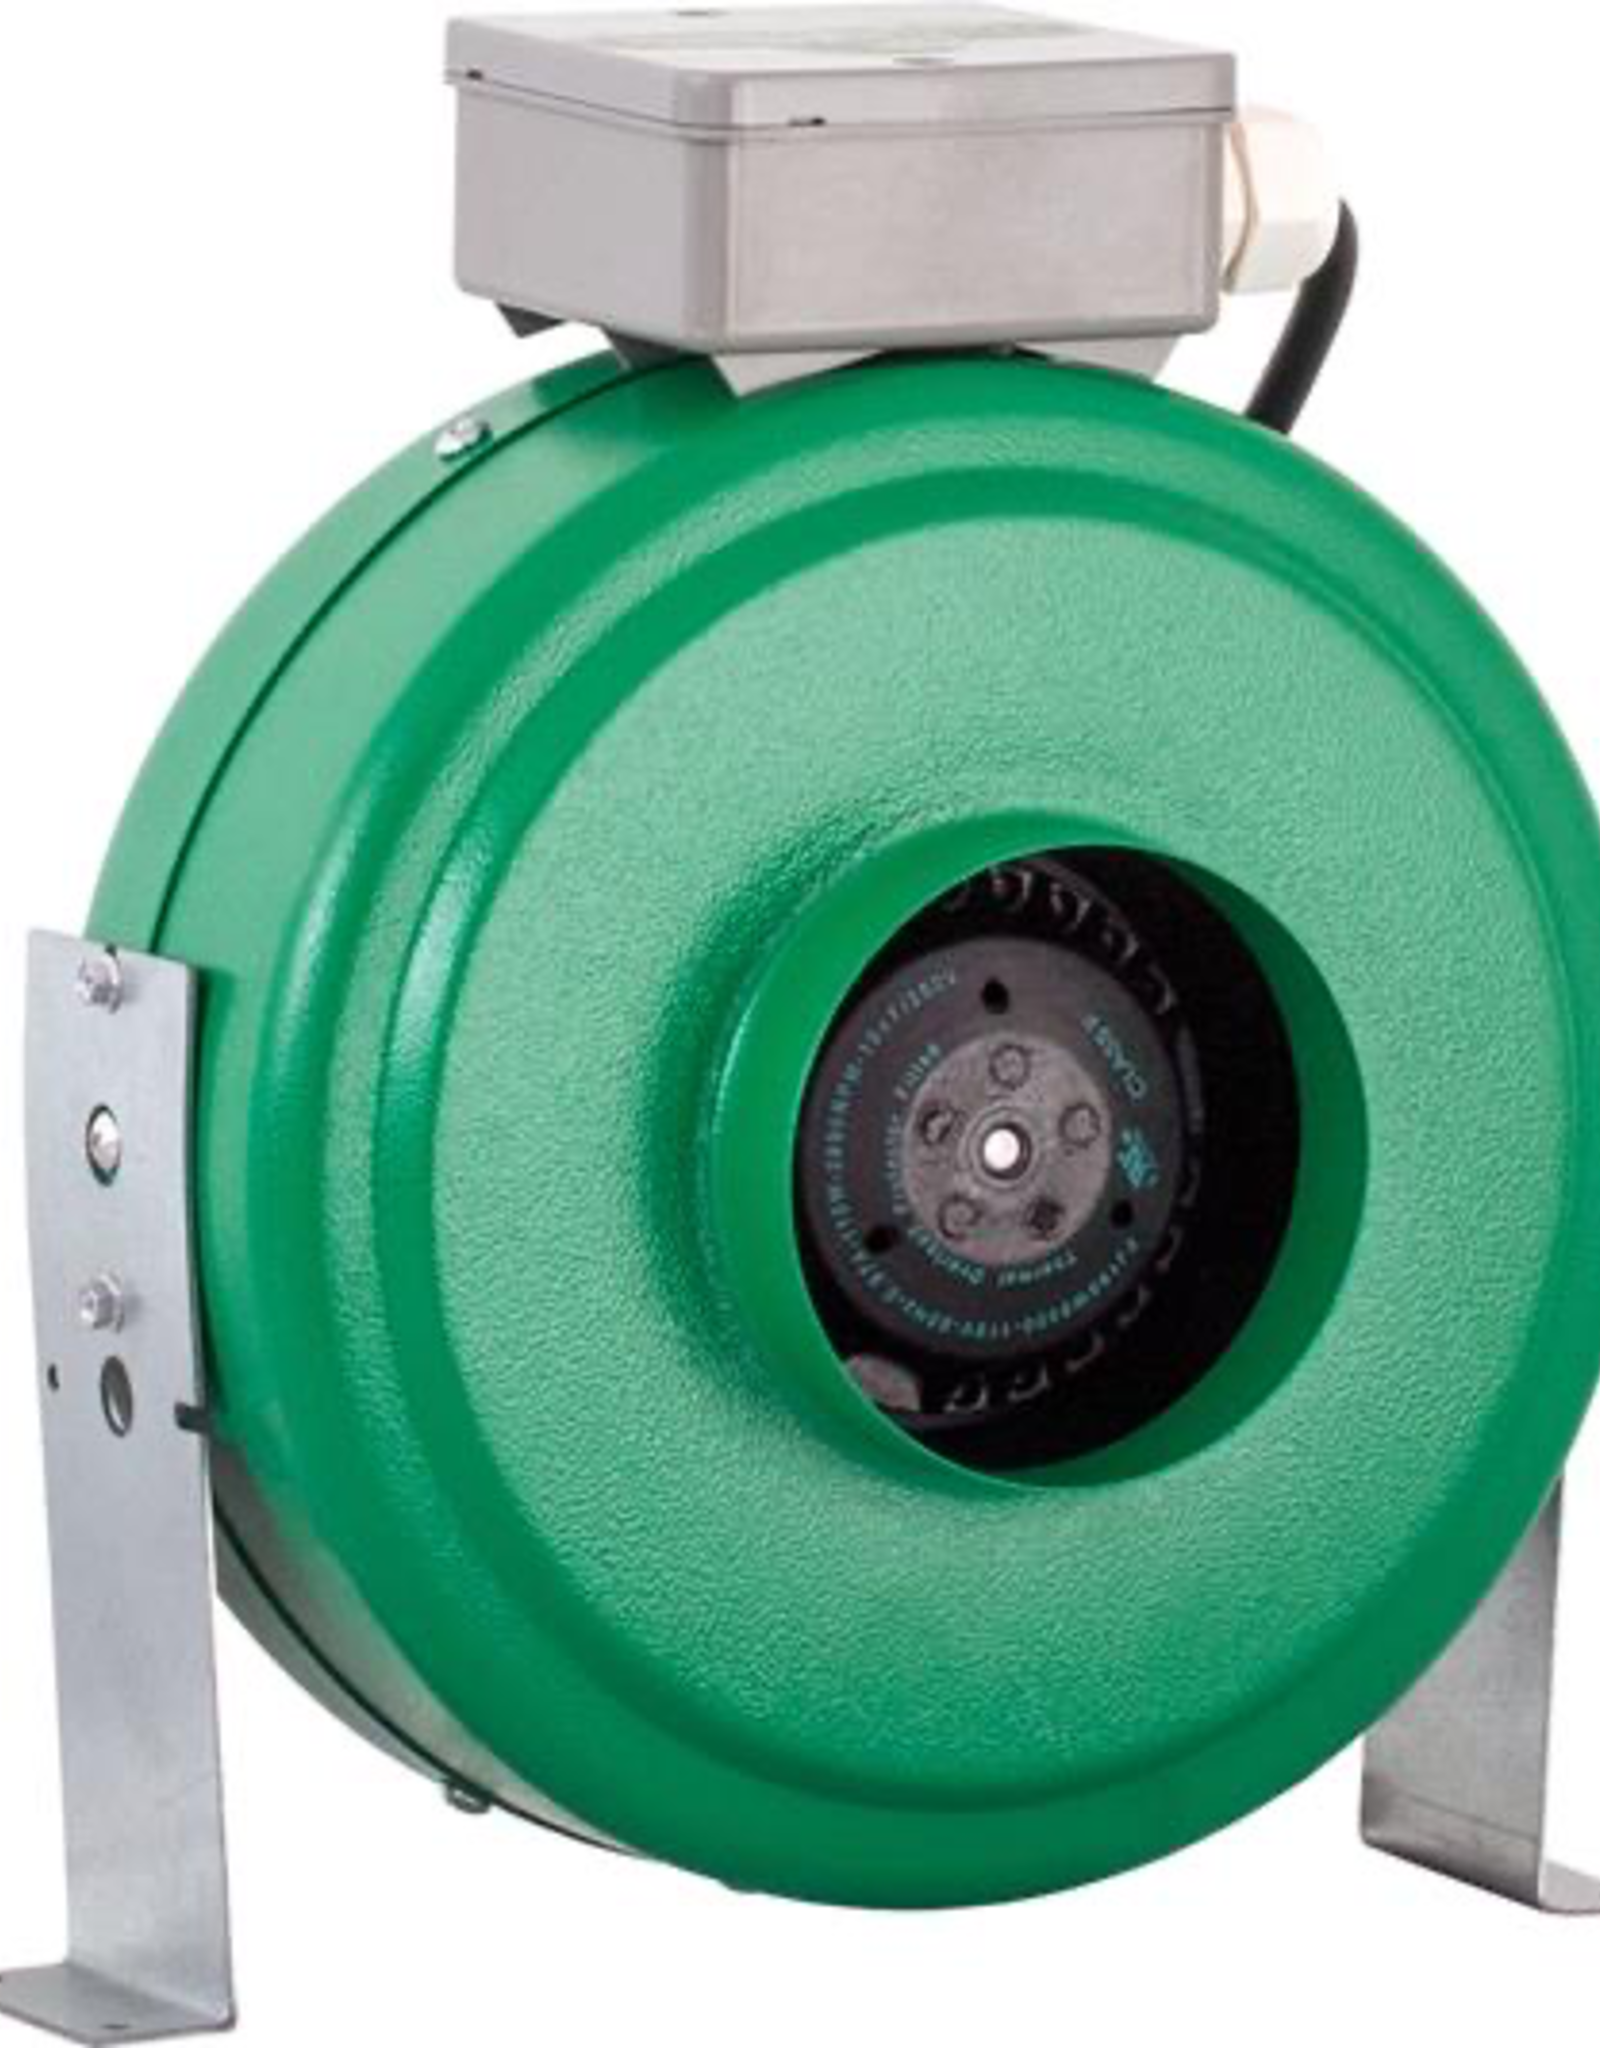 ACTIVE AIR Active Air In-Line Duct Fans offer innovation and performance at a great price. With a full line of fans to meet your needs, all Active Air Fans feature:<br /><br />Quiet operation<br />Durable ceramic-coated<br />Metal housing<br />UL-recognized components<br />High quality molded im